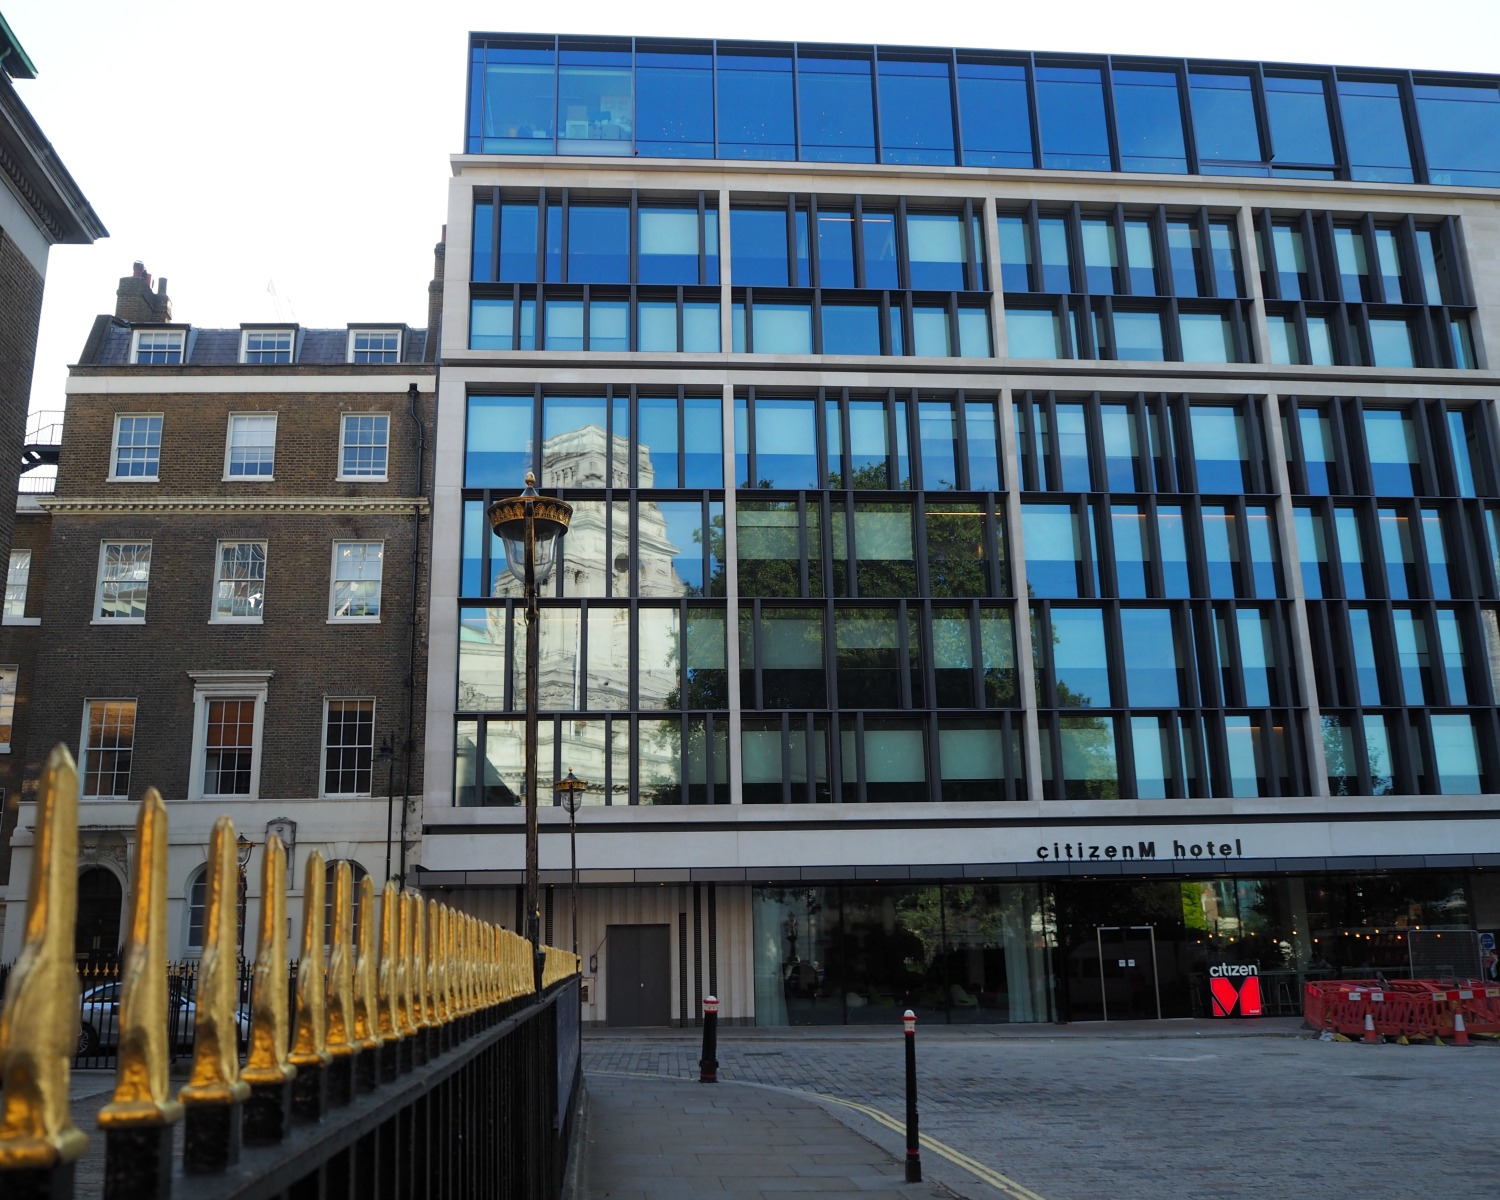 design hotel citizenm london, design tourist - london's newest hotel citizenm - hello peagreen, Design ideen